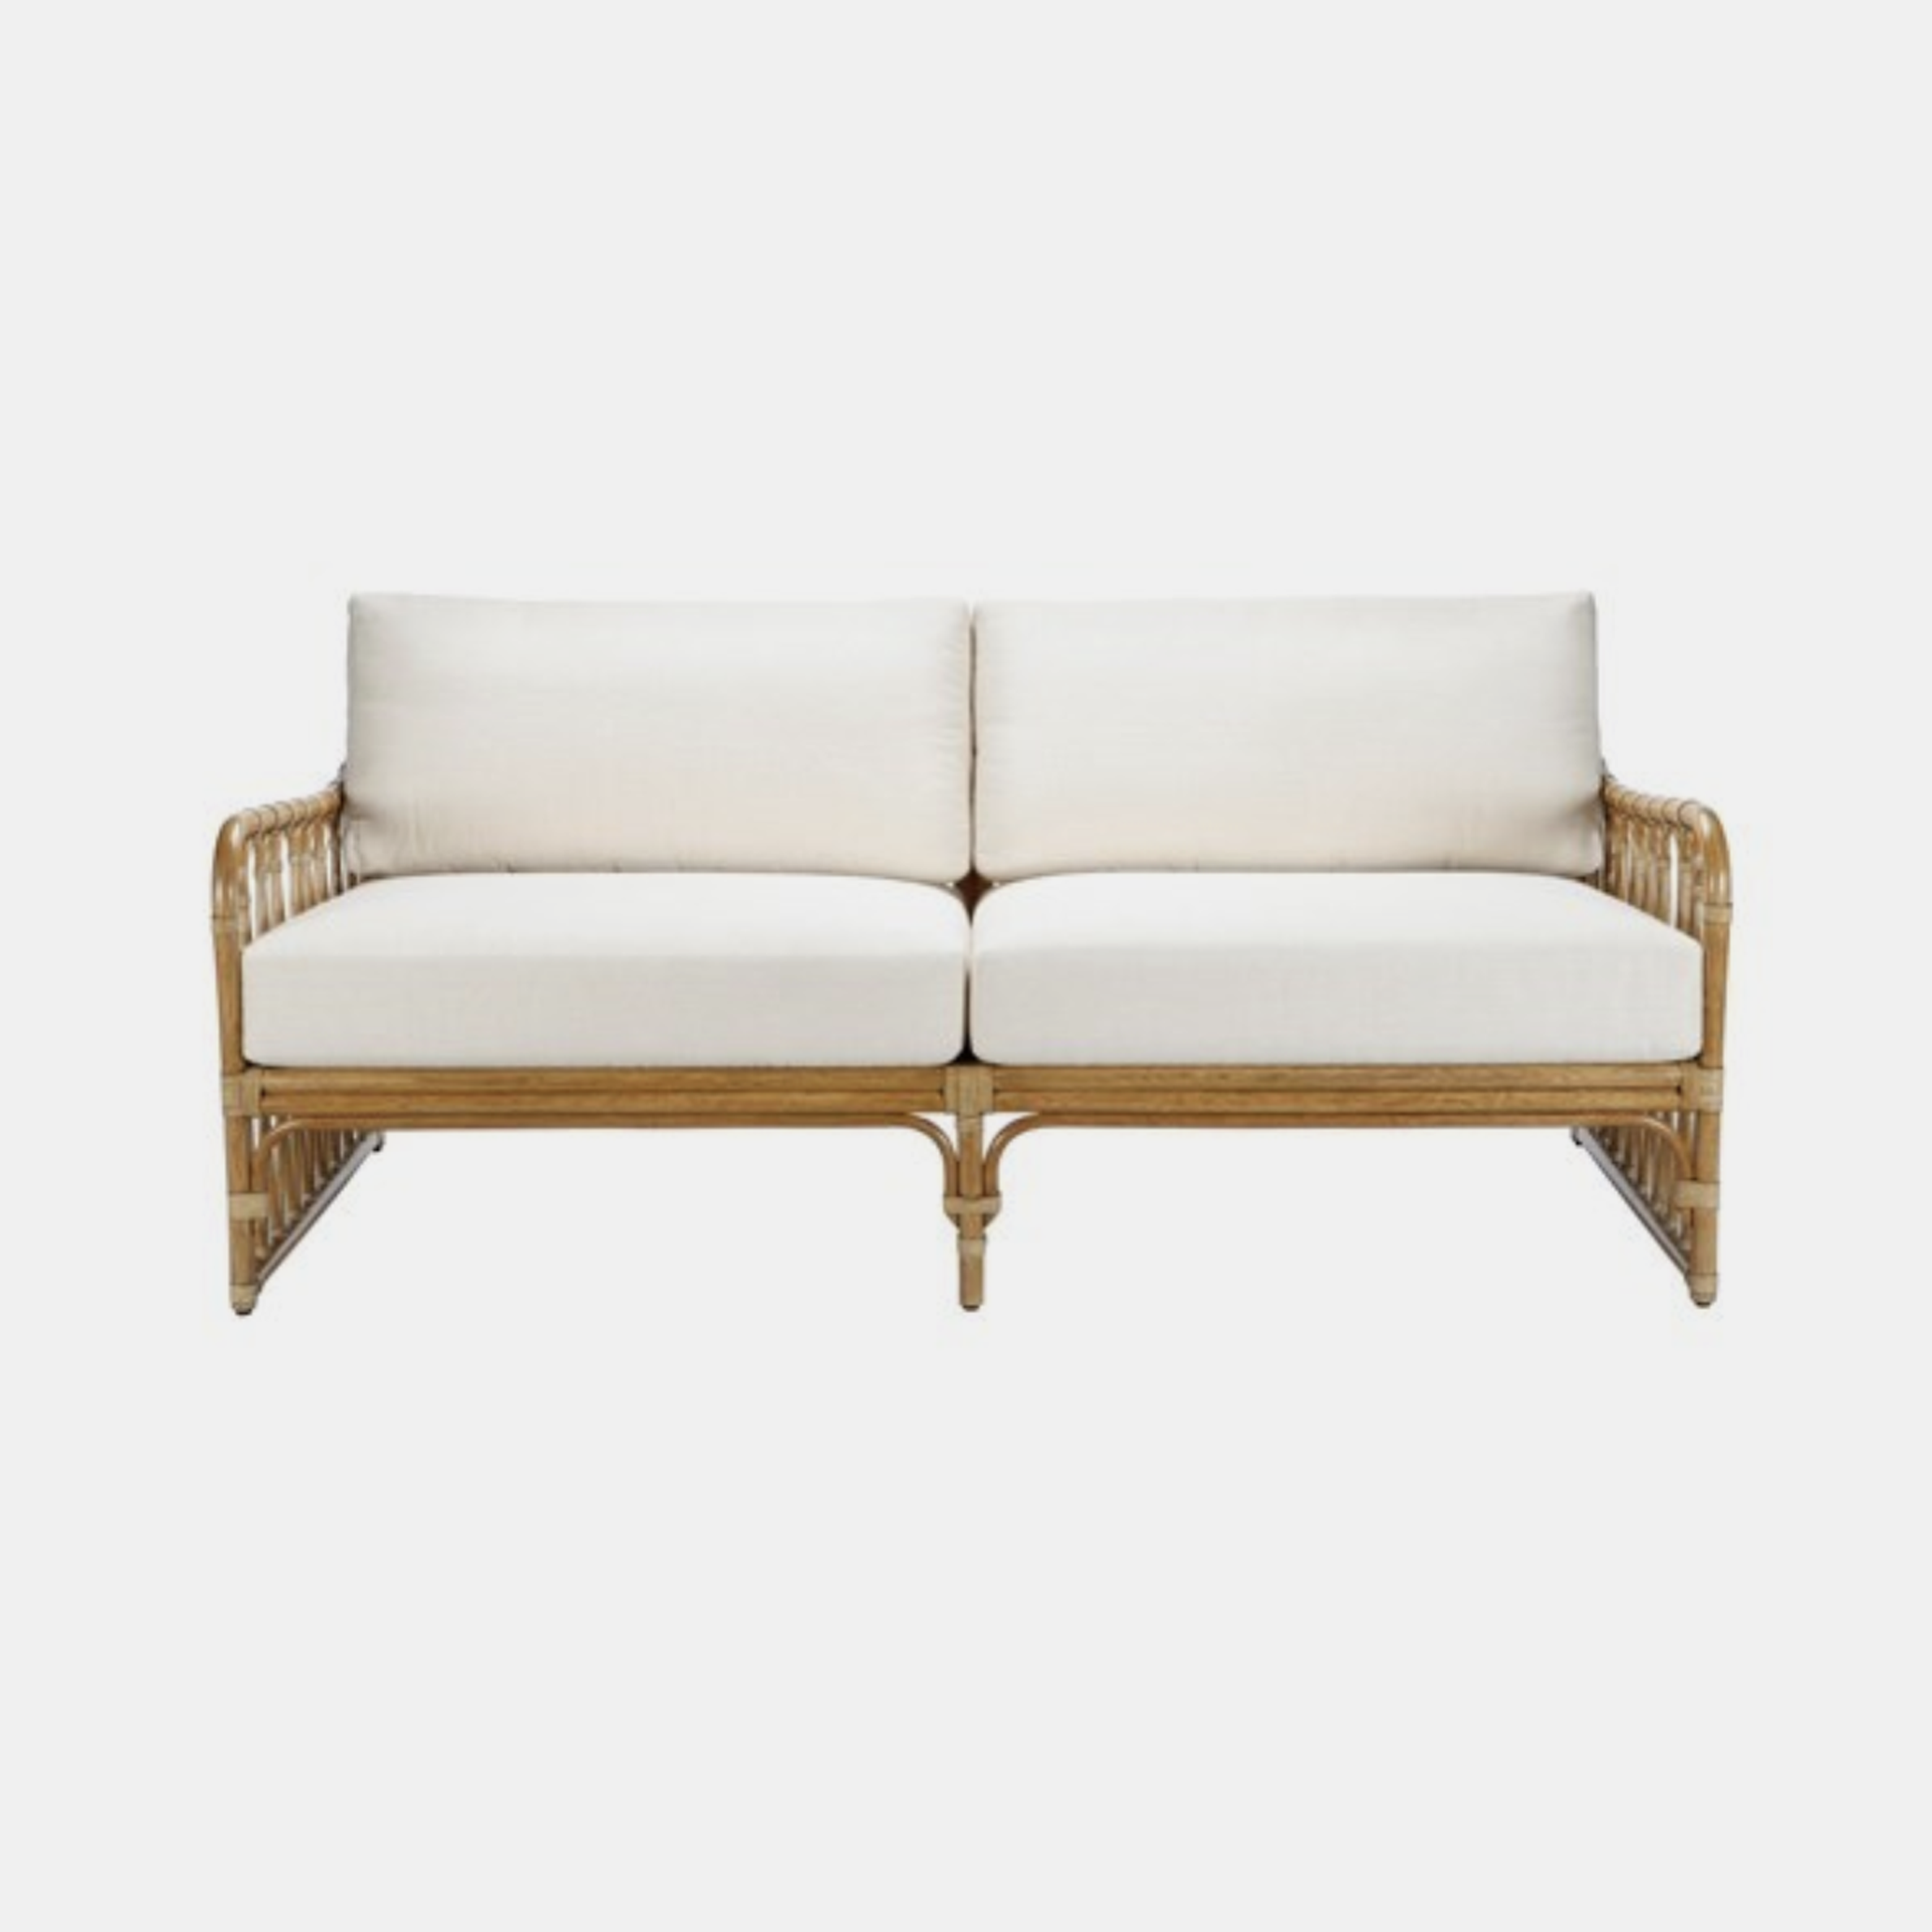 Sona Settee  72'' x 35.5'' x 31.5'' Available in nutmeg (shown), cinnamon, and clove. Also available as arm chair, side chair, lounge chair, bar stool, side table, dining table, and coffee table. SKU1390SLM